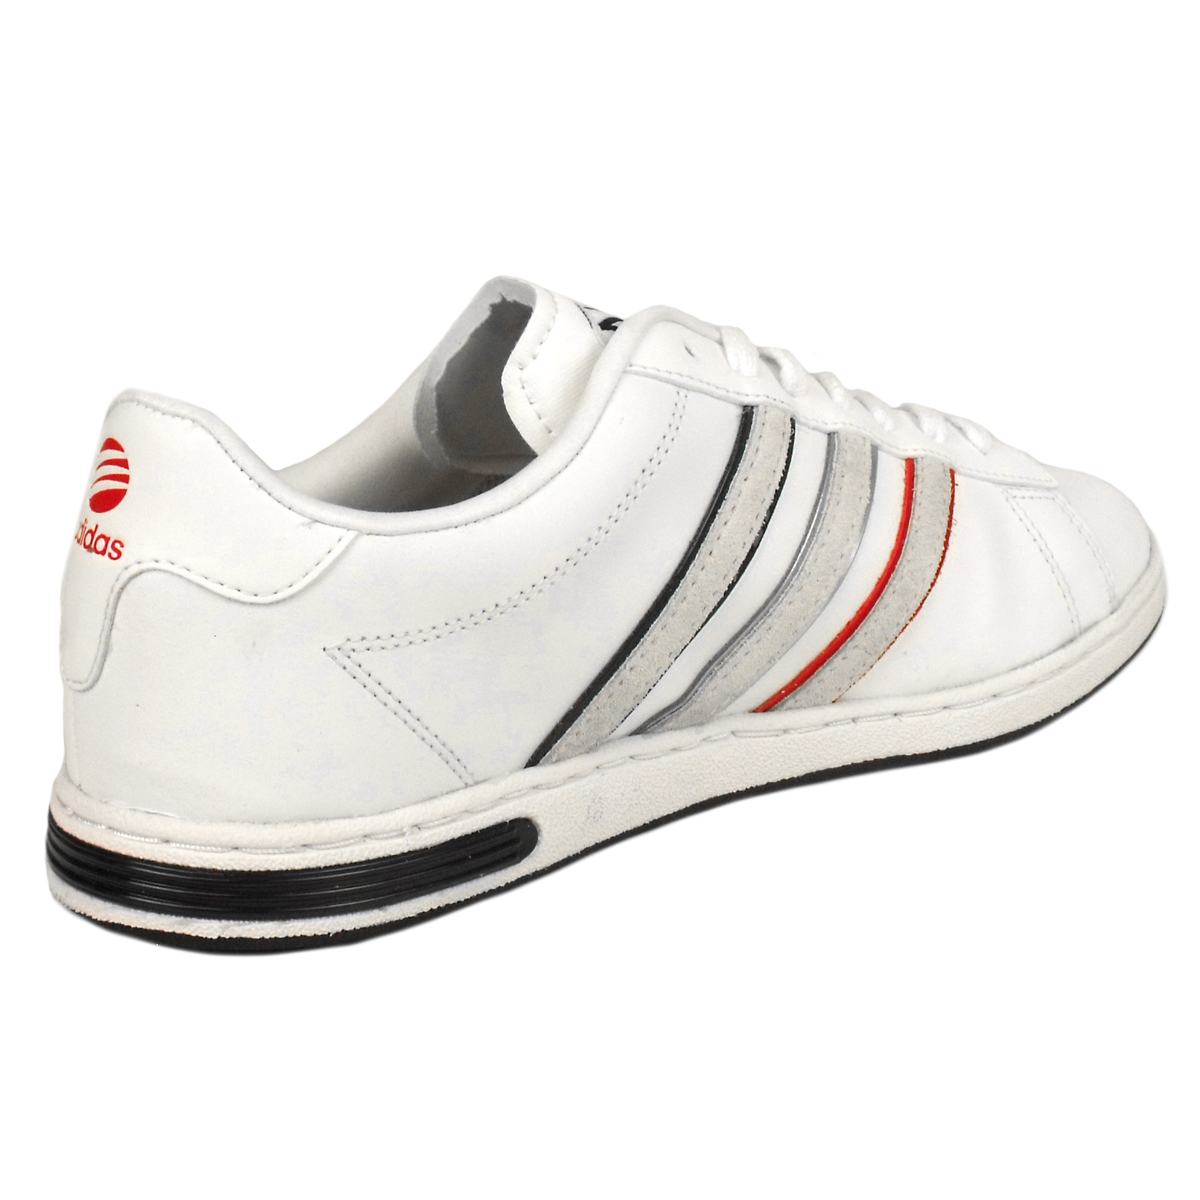 mens adidas derby ii neo label trainers white leather. Black Bedroom Furniture Sets. Home Design Ideas